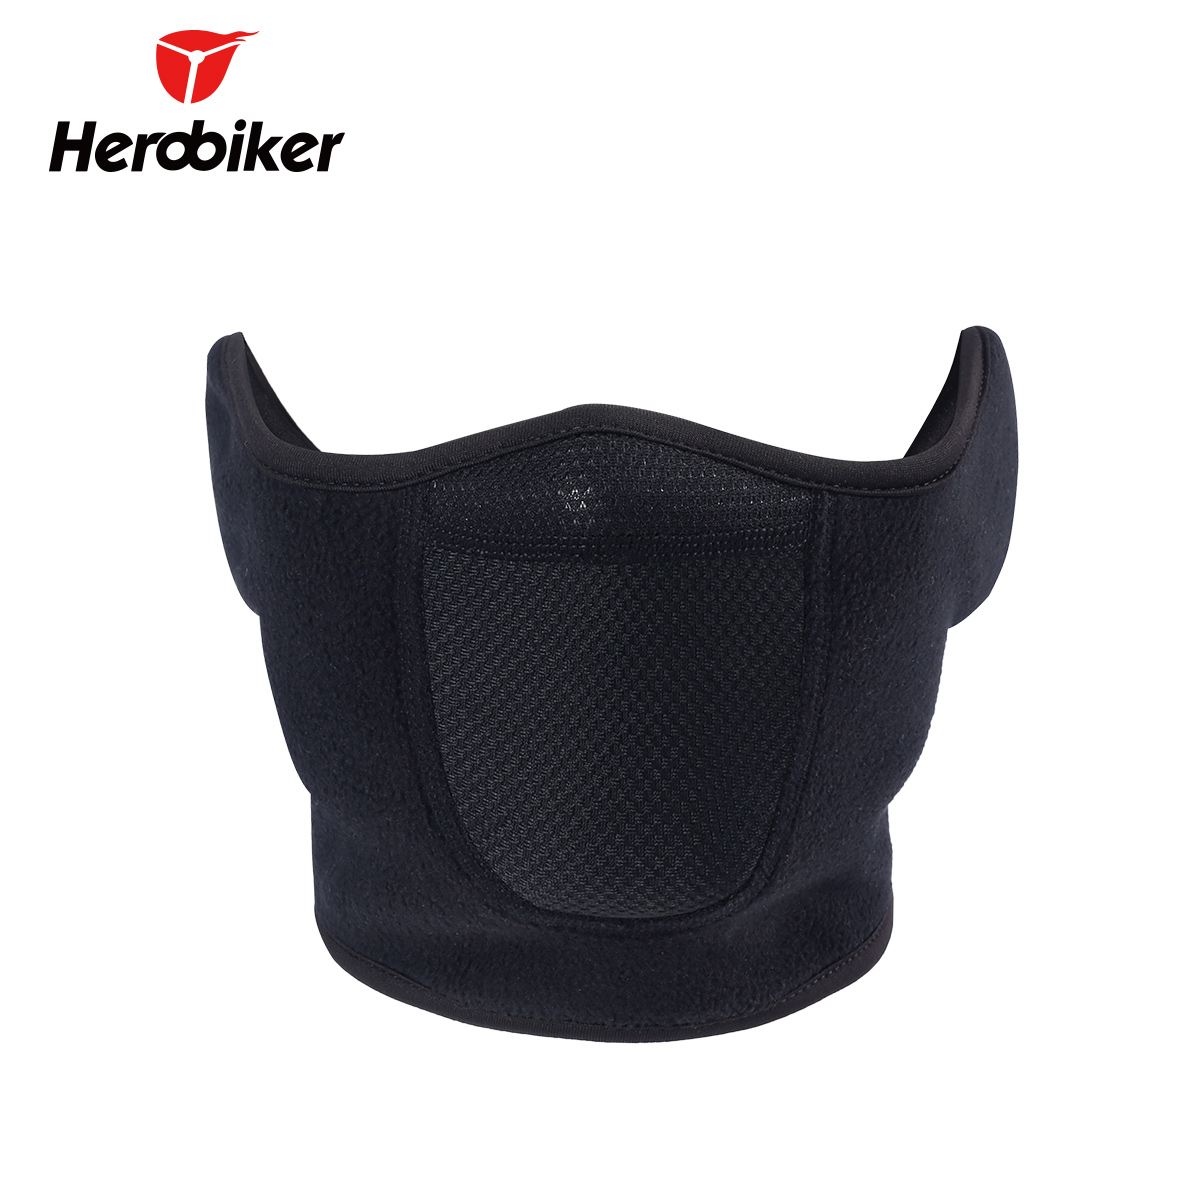 HEROBIKER Black Motorcycle Face Mask Moto Autumn Winter Skiing Snowboard Mask Cold proof Thermal Fleece Cycling Half Face Mask|motorcycle face mask|face mask moto|mask moto - title=